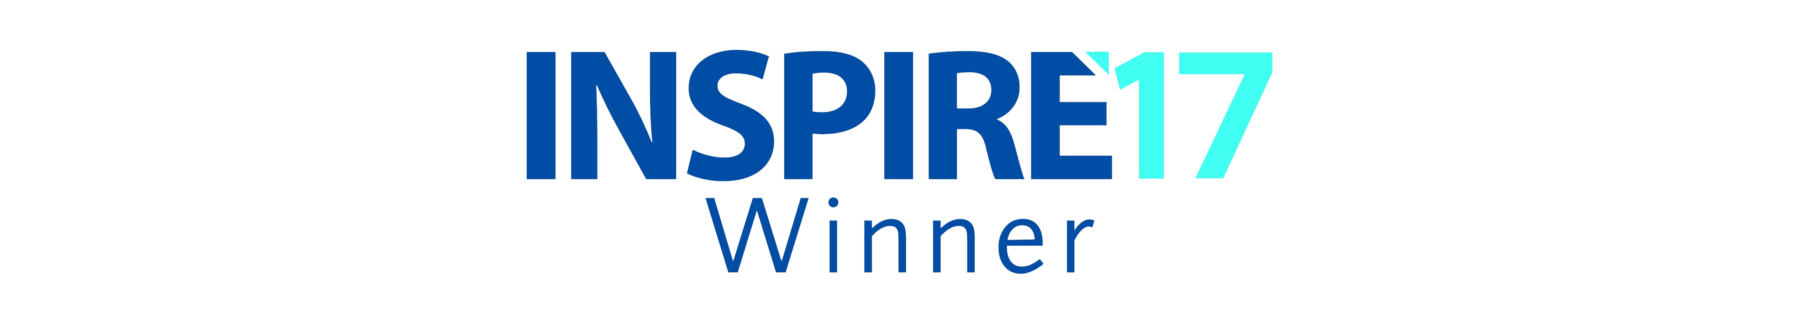 INSPIRE AWARDS WINNER 2017 | Connective Chiropractic | Chiropractic Clinic | Chiropractor near me | What is Chiropractic